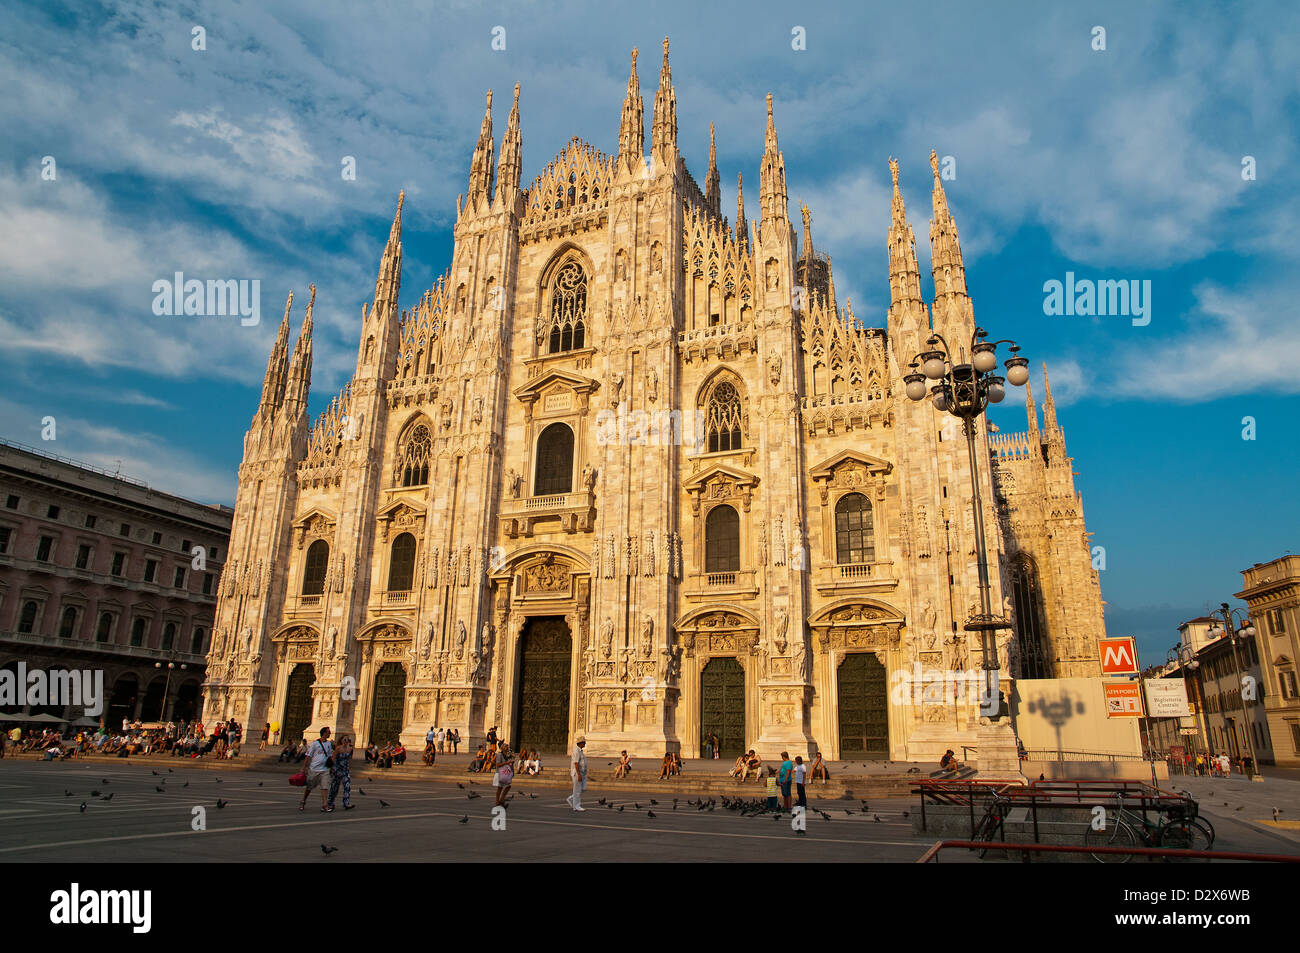 Duomo cathedral at sunset, Milan, Italy - Stock Image